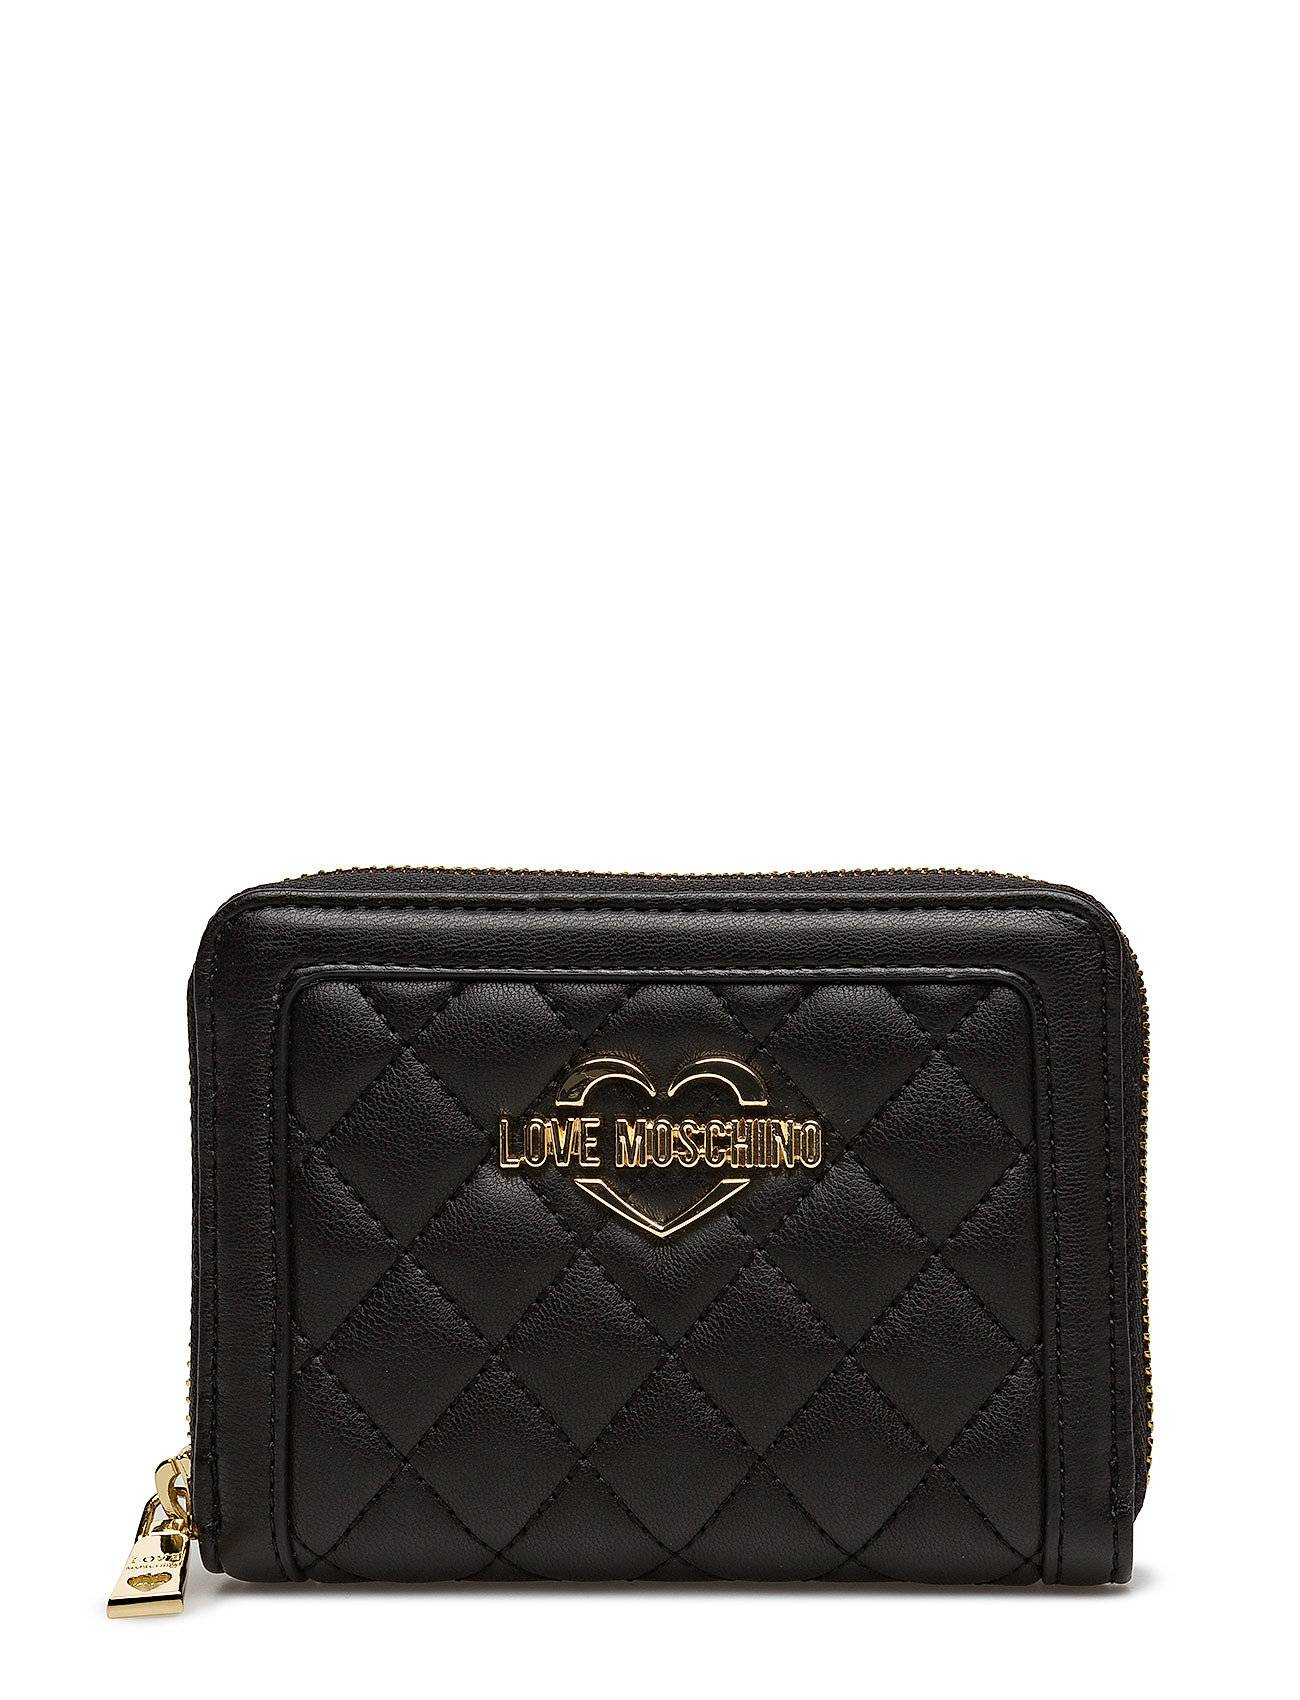 Love Moschino Bags Love Moschino-Wallet